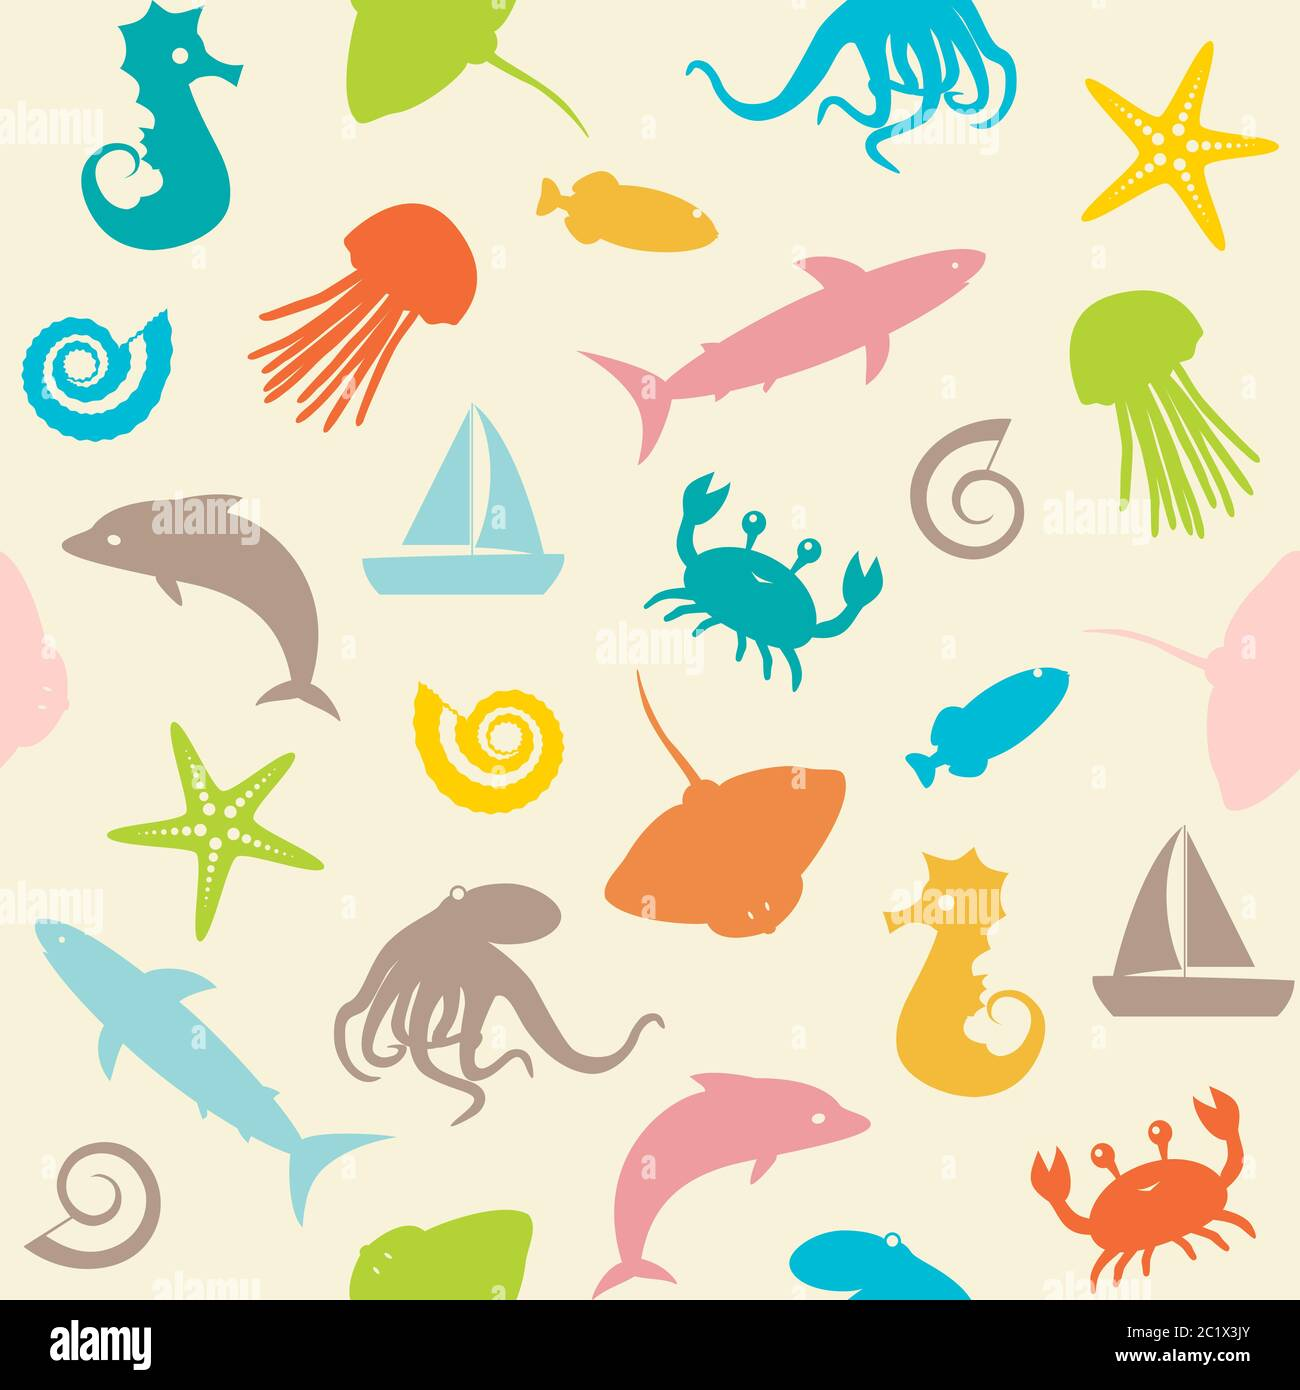 Ocean Animal Clipart - Clip Art On Sea Creature - Free Transparent PNG  Clipart Images Download